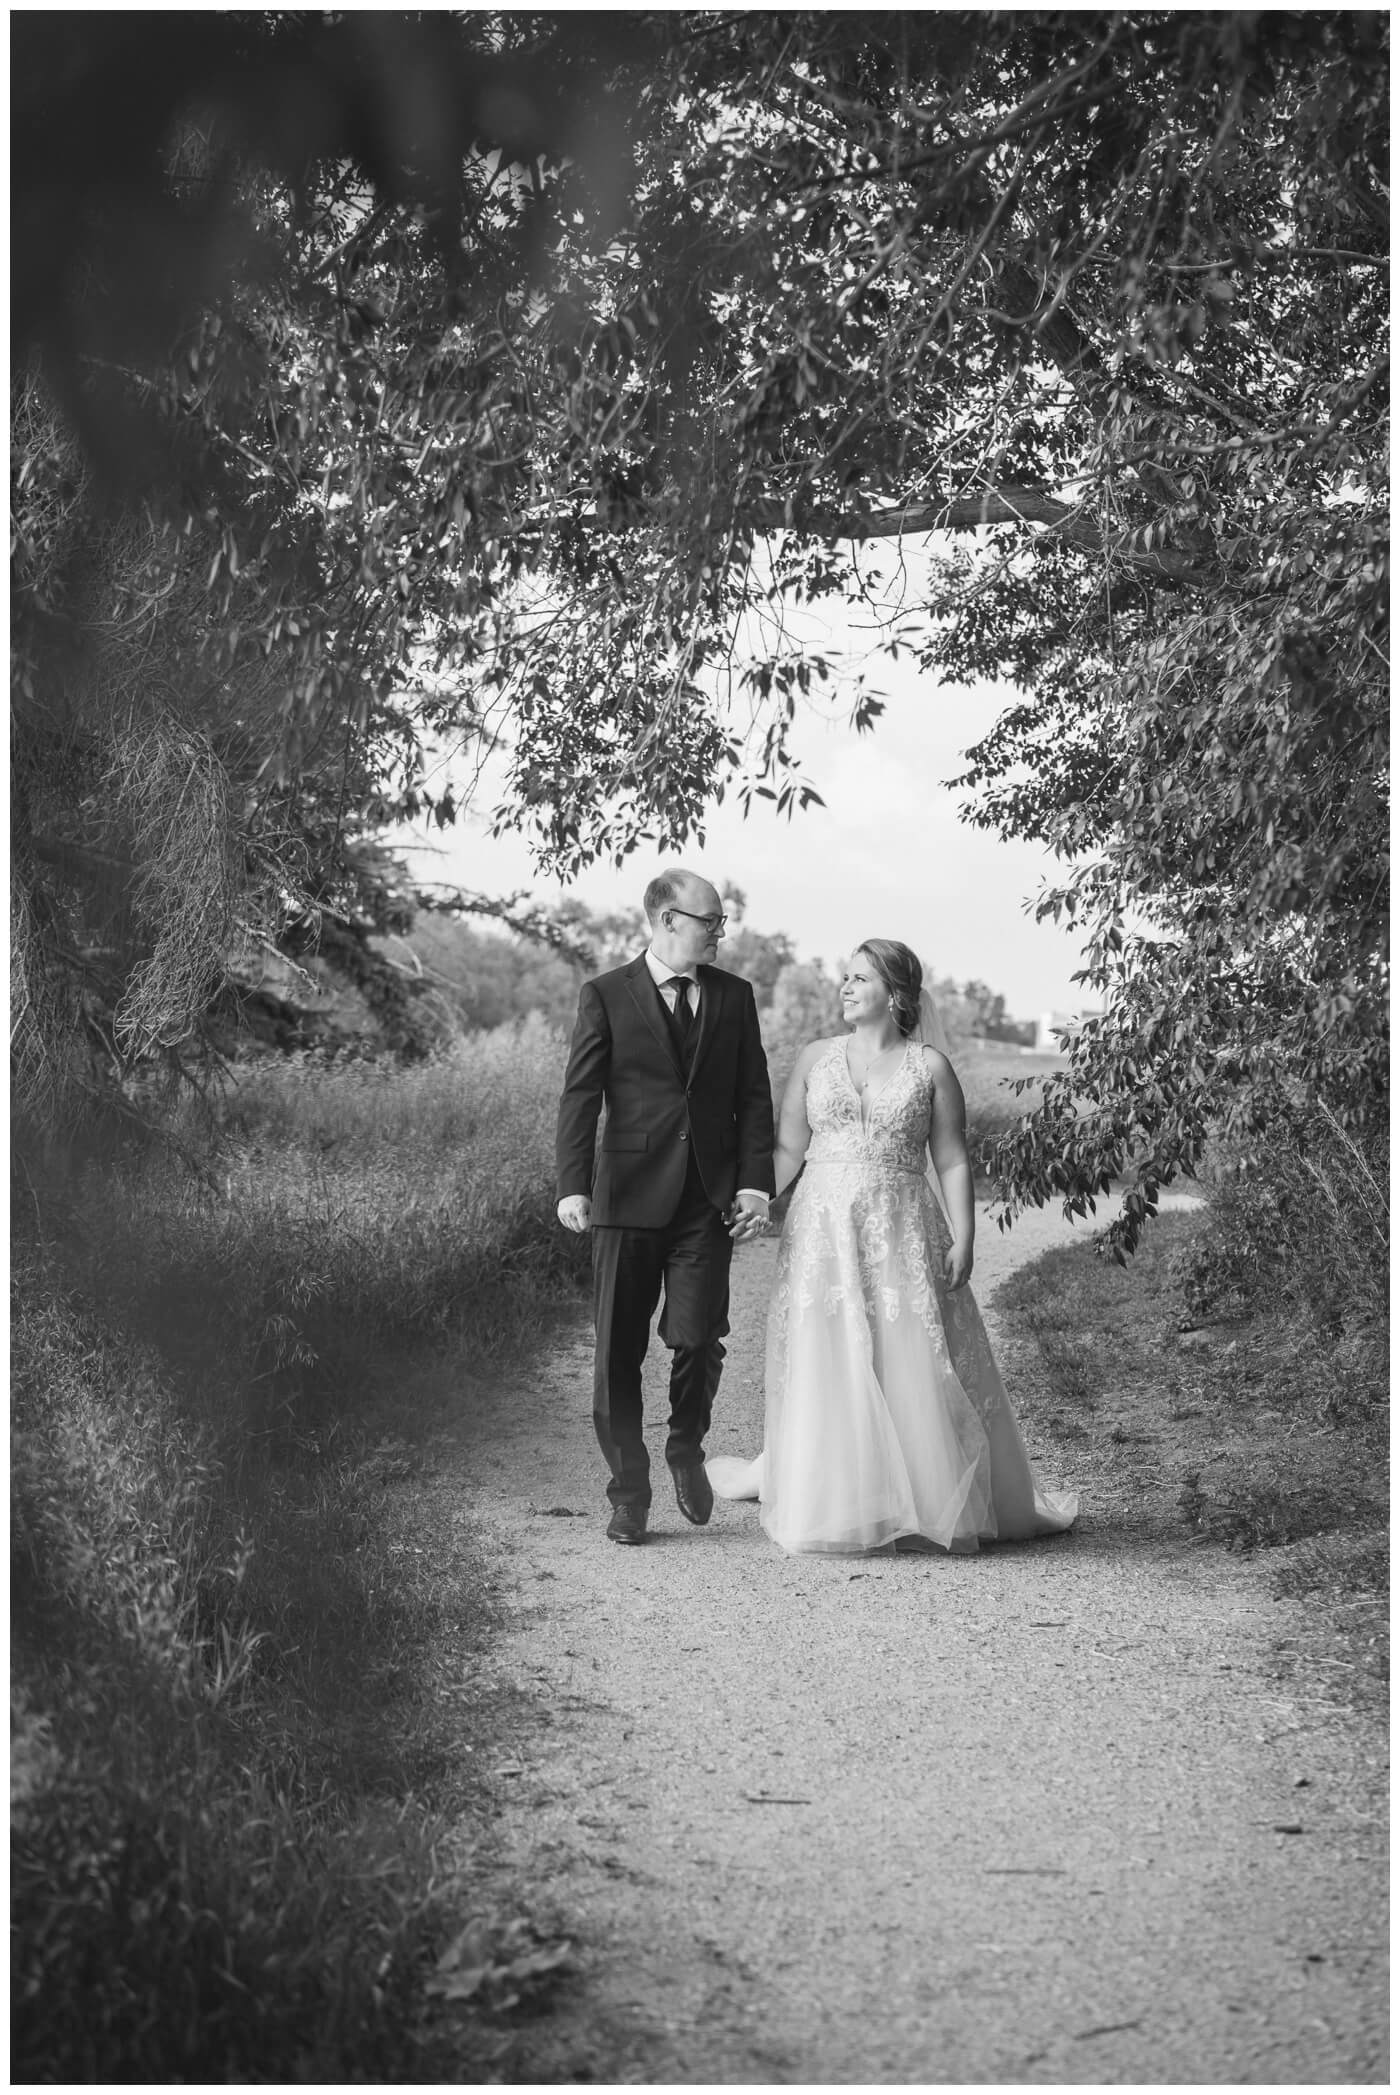 Colter & Jillyan - Encore Wedding Session - 04 - Bride & Groom walking on a path in black and white